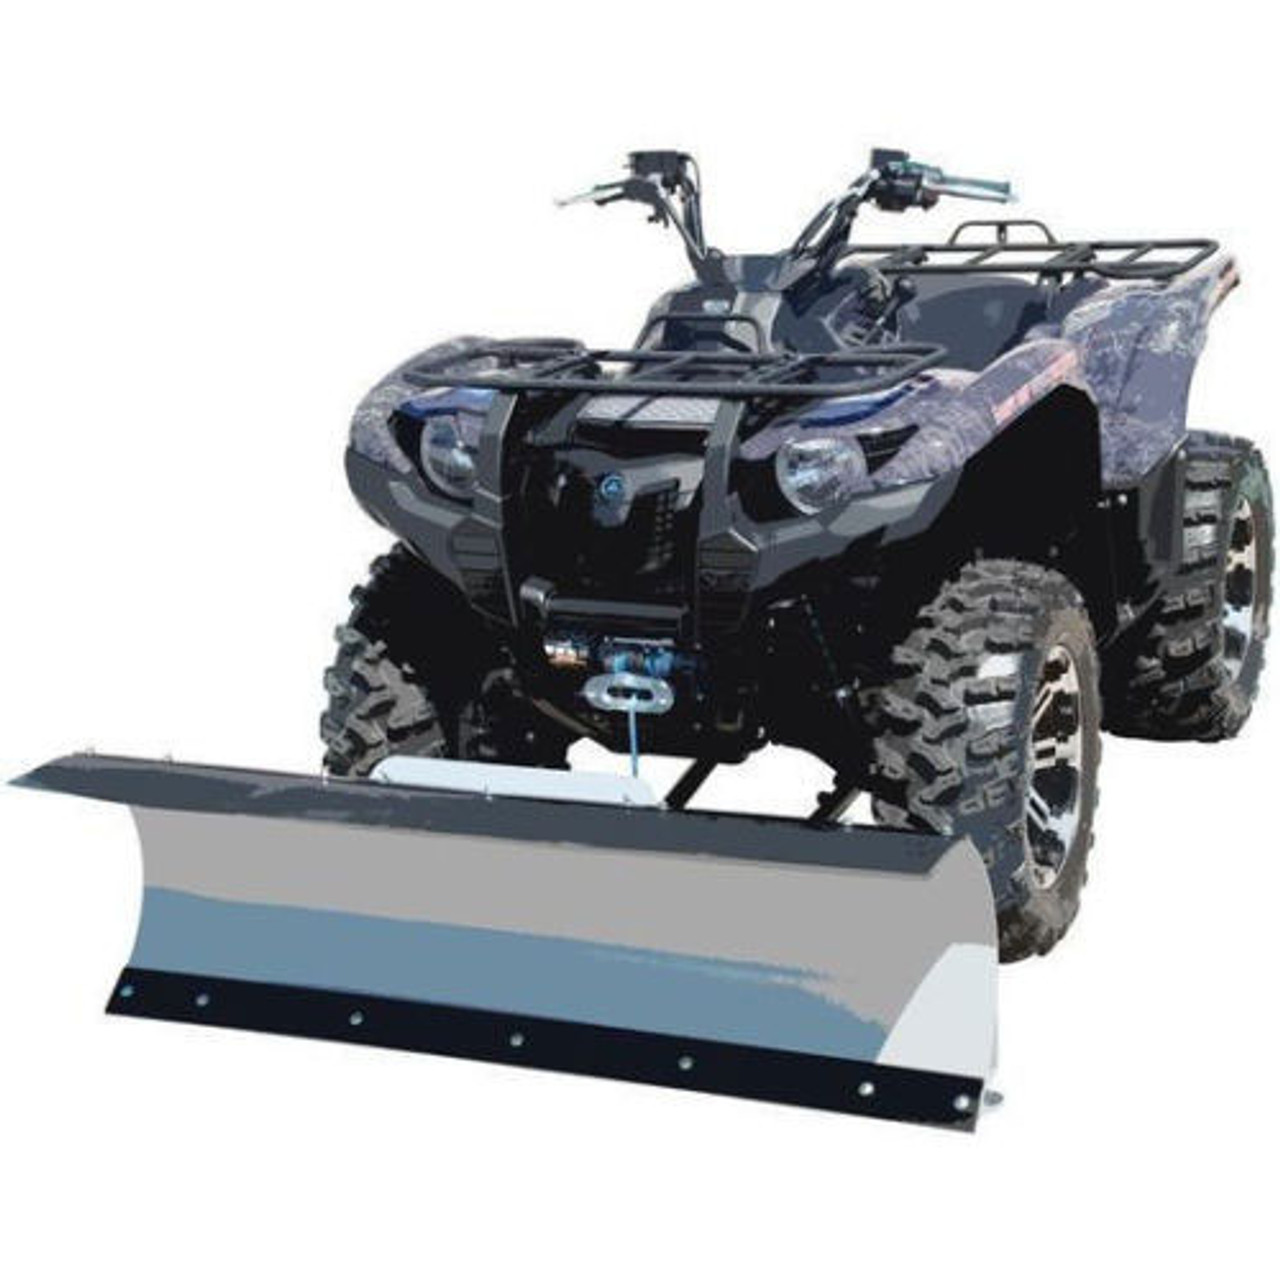 medium resolution of snow plow packages for polaris atv models select plow blade plow mount winch options westendmotorsports com